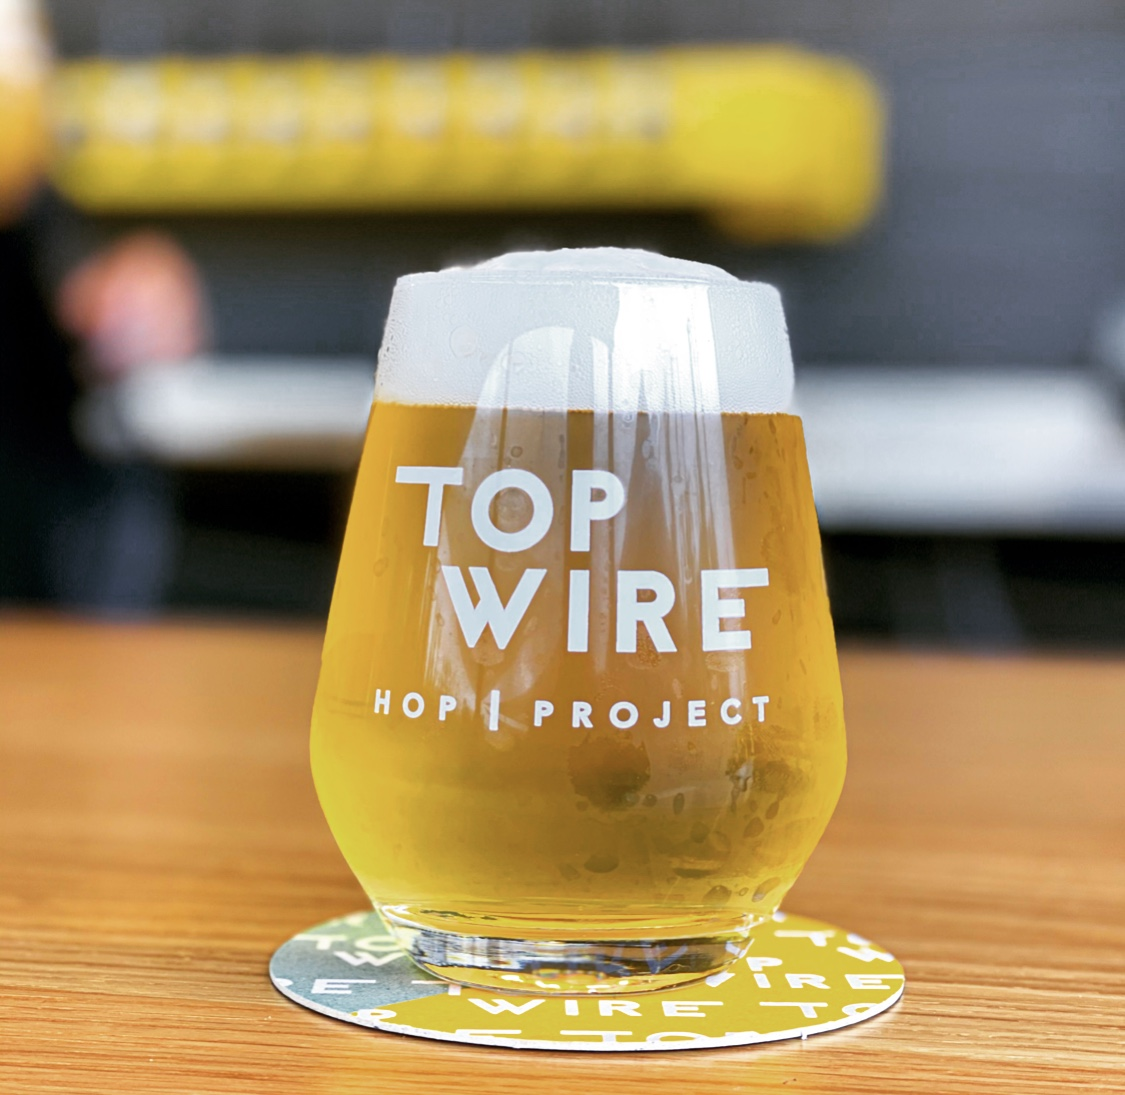 Jenna Steward TopWire Hop Project / Cosby Hops – Craft Beer Podcast Episode 121 by Steven Shomler